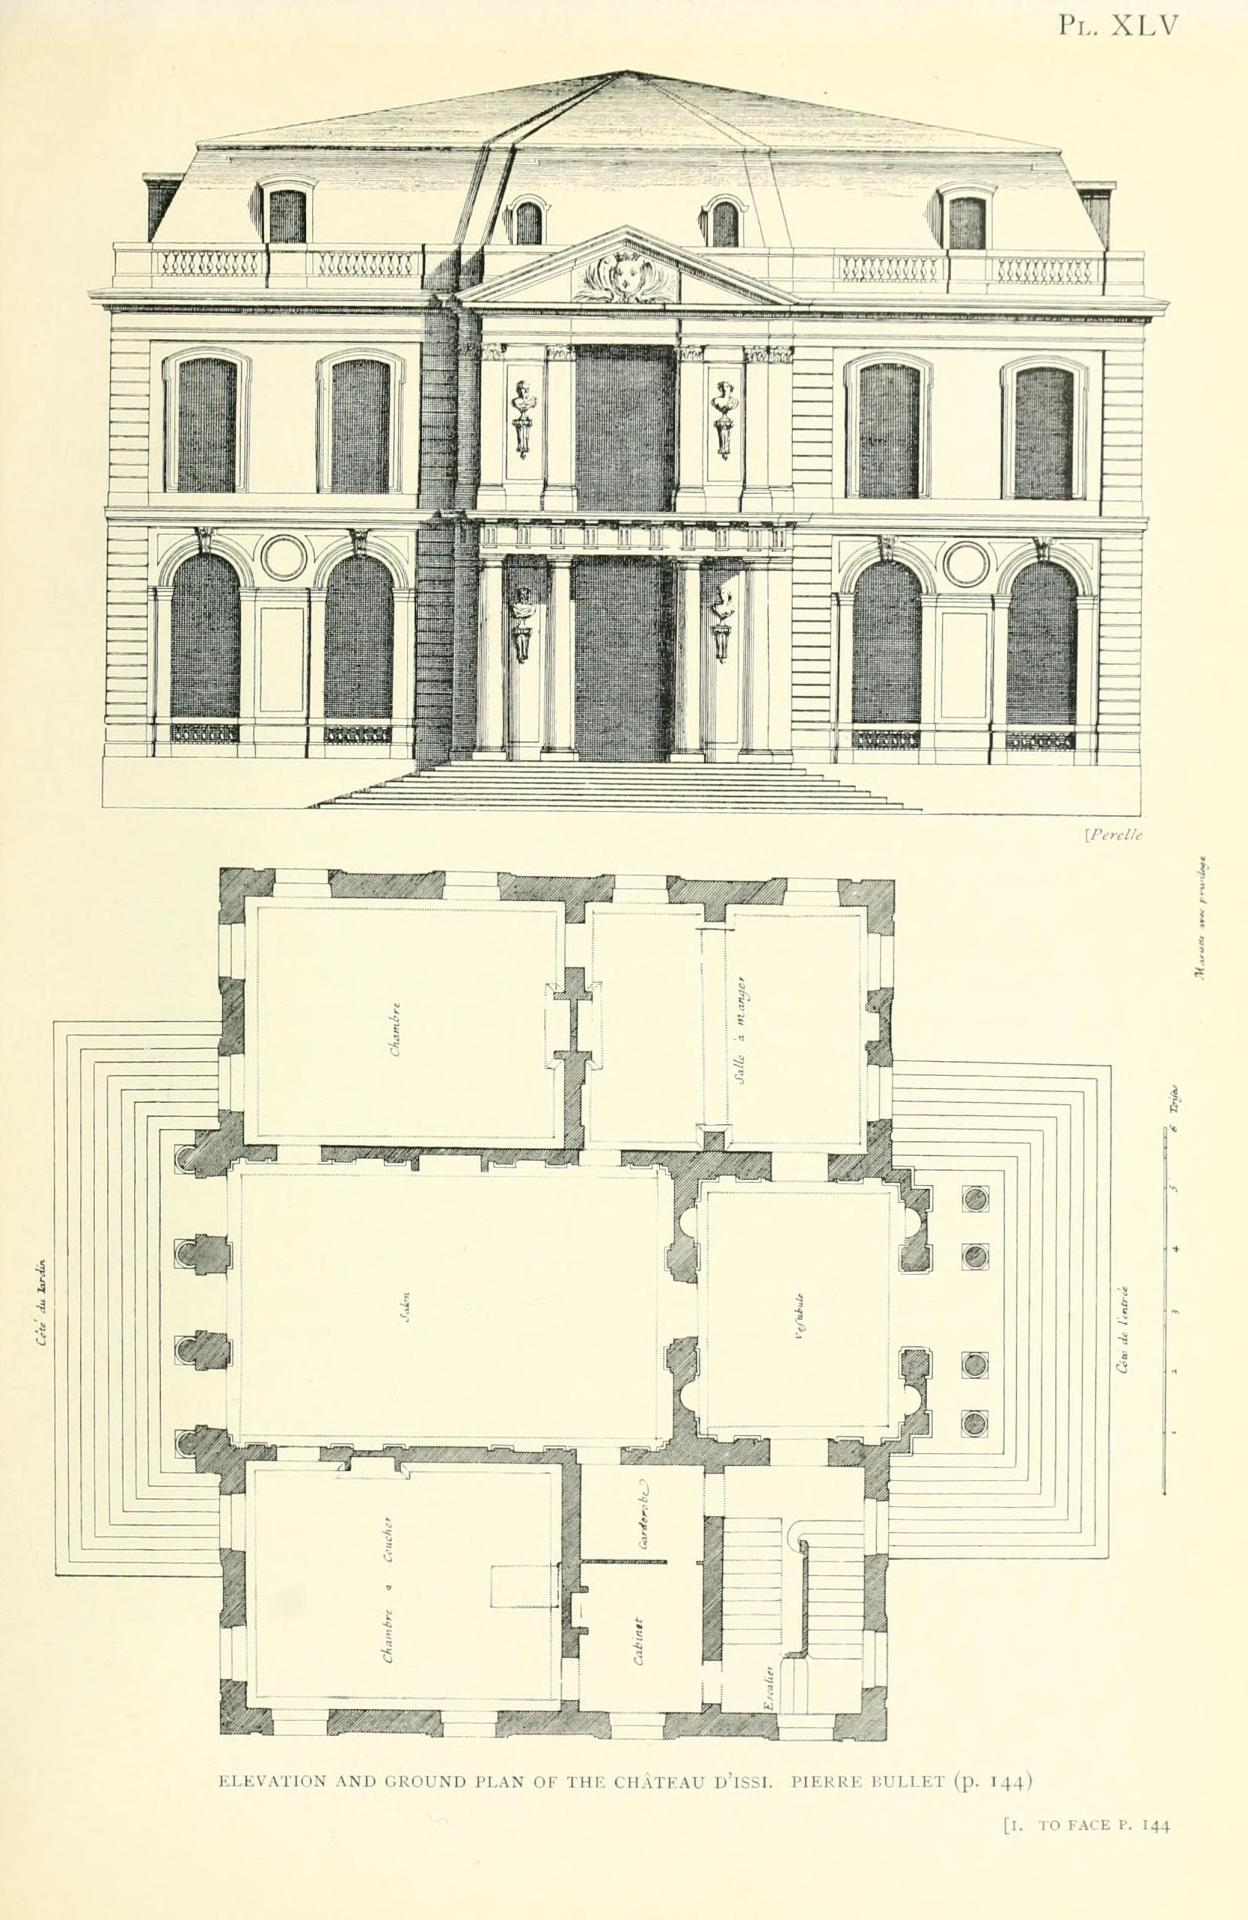 Bullet's elevation and plan of the Château d'Issy